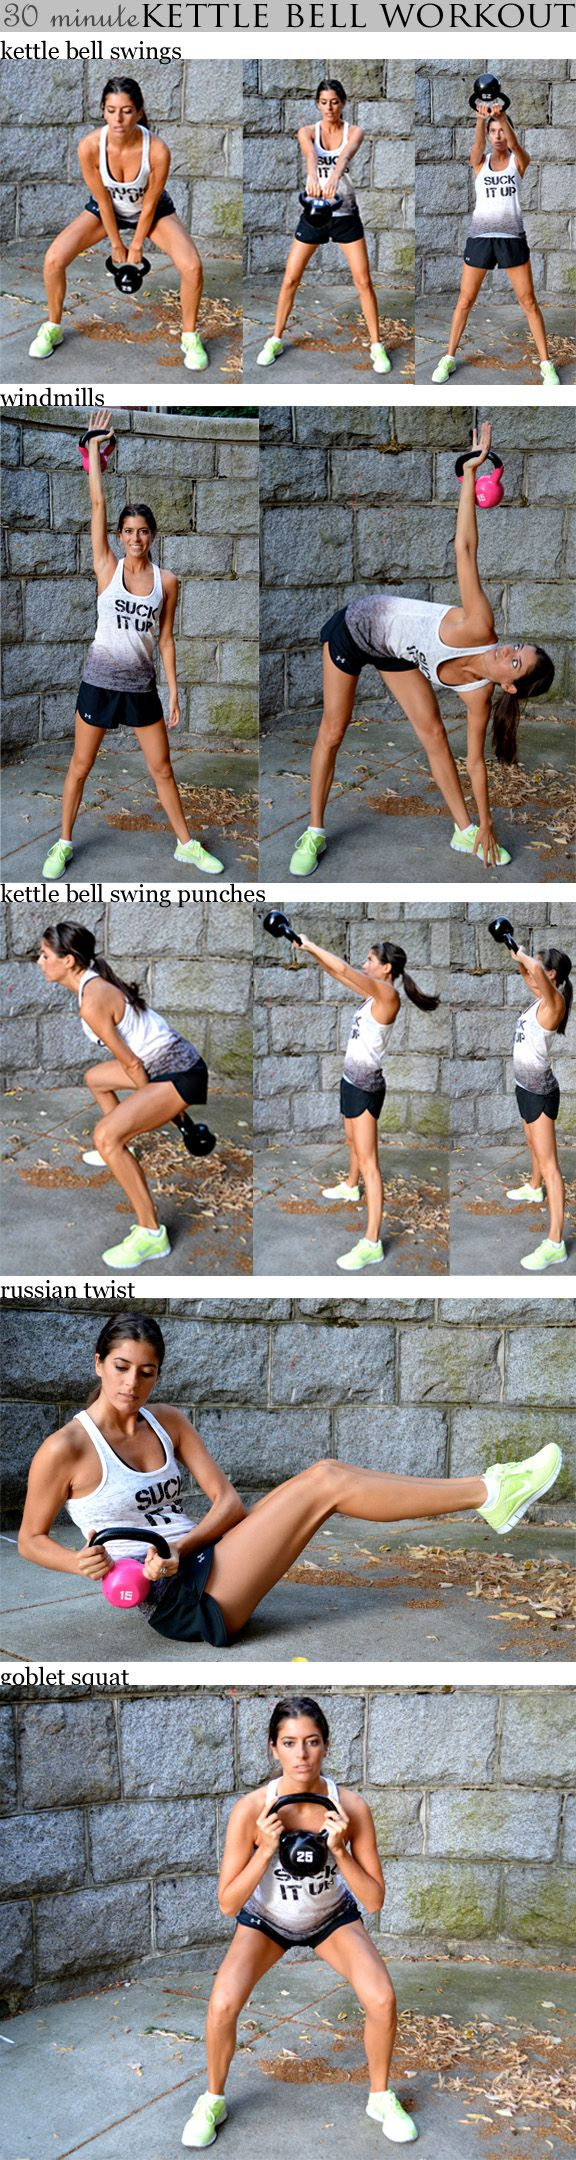 30 minute kettle bell workout  Set your interval timer for 30 rounds of 40 seconds of work and 20 seconds of rest. You'll go through the following sequence five times: (1) Kettlebell Swings (2) Windmills - left (3) Windmills - right (4) Kettlebell Swing Punches (5) Russian Twists (6) Goblet Squats